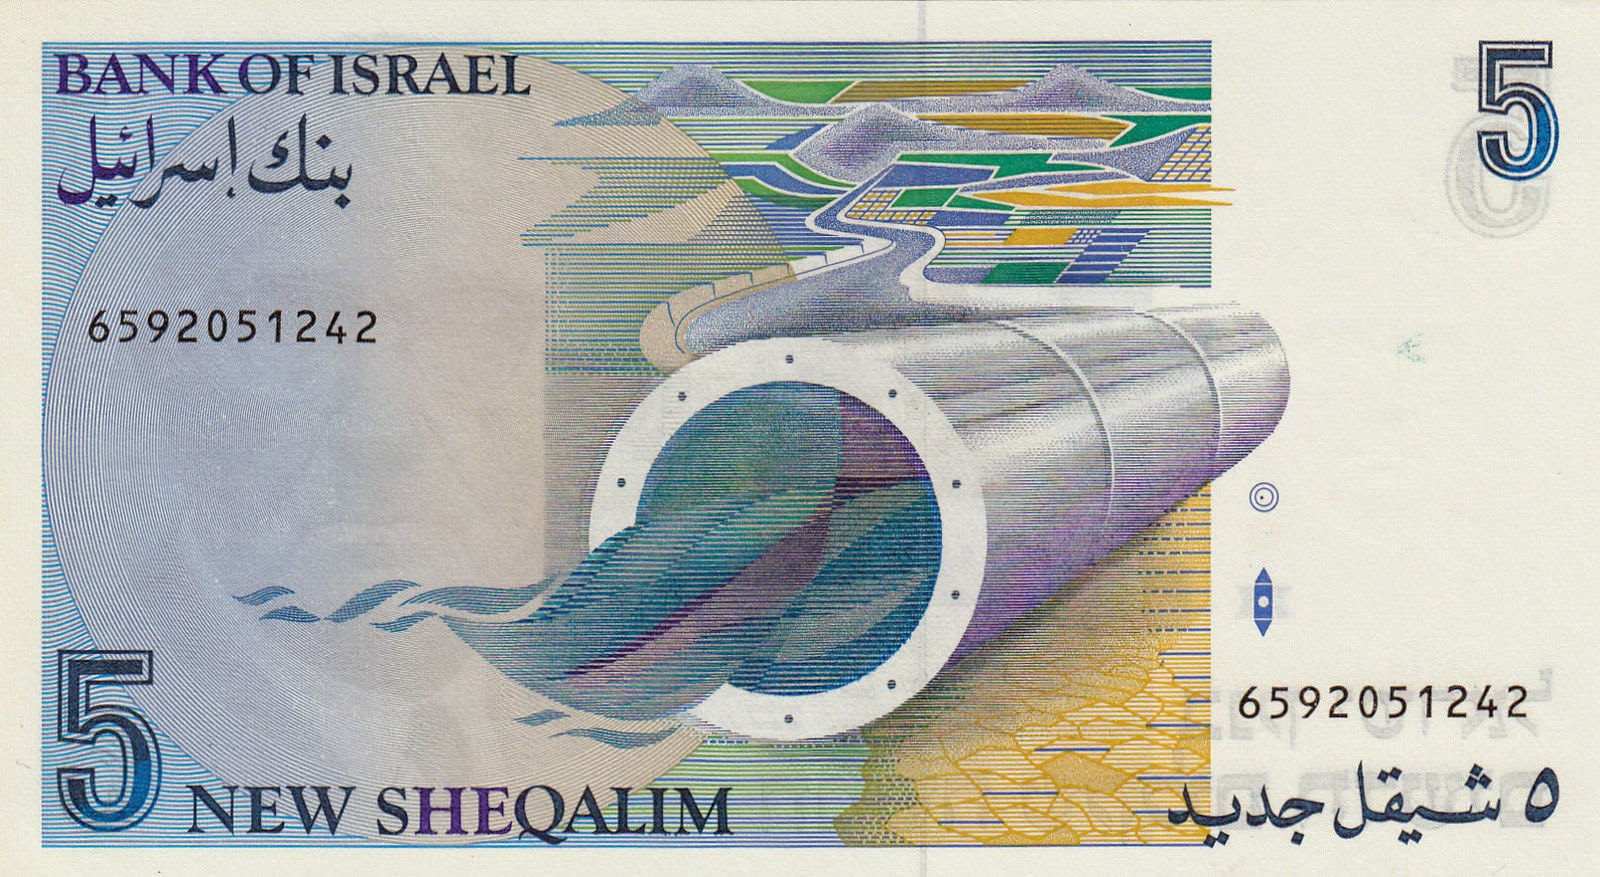 Israeli currency 5 New Shekels banknote 1987 Bank of Israel